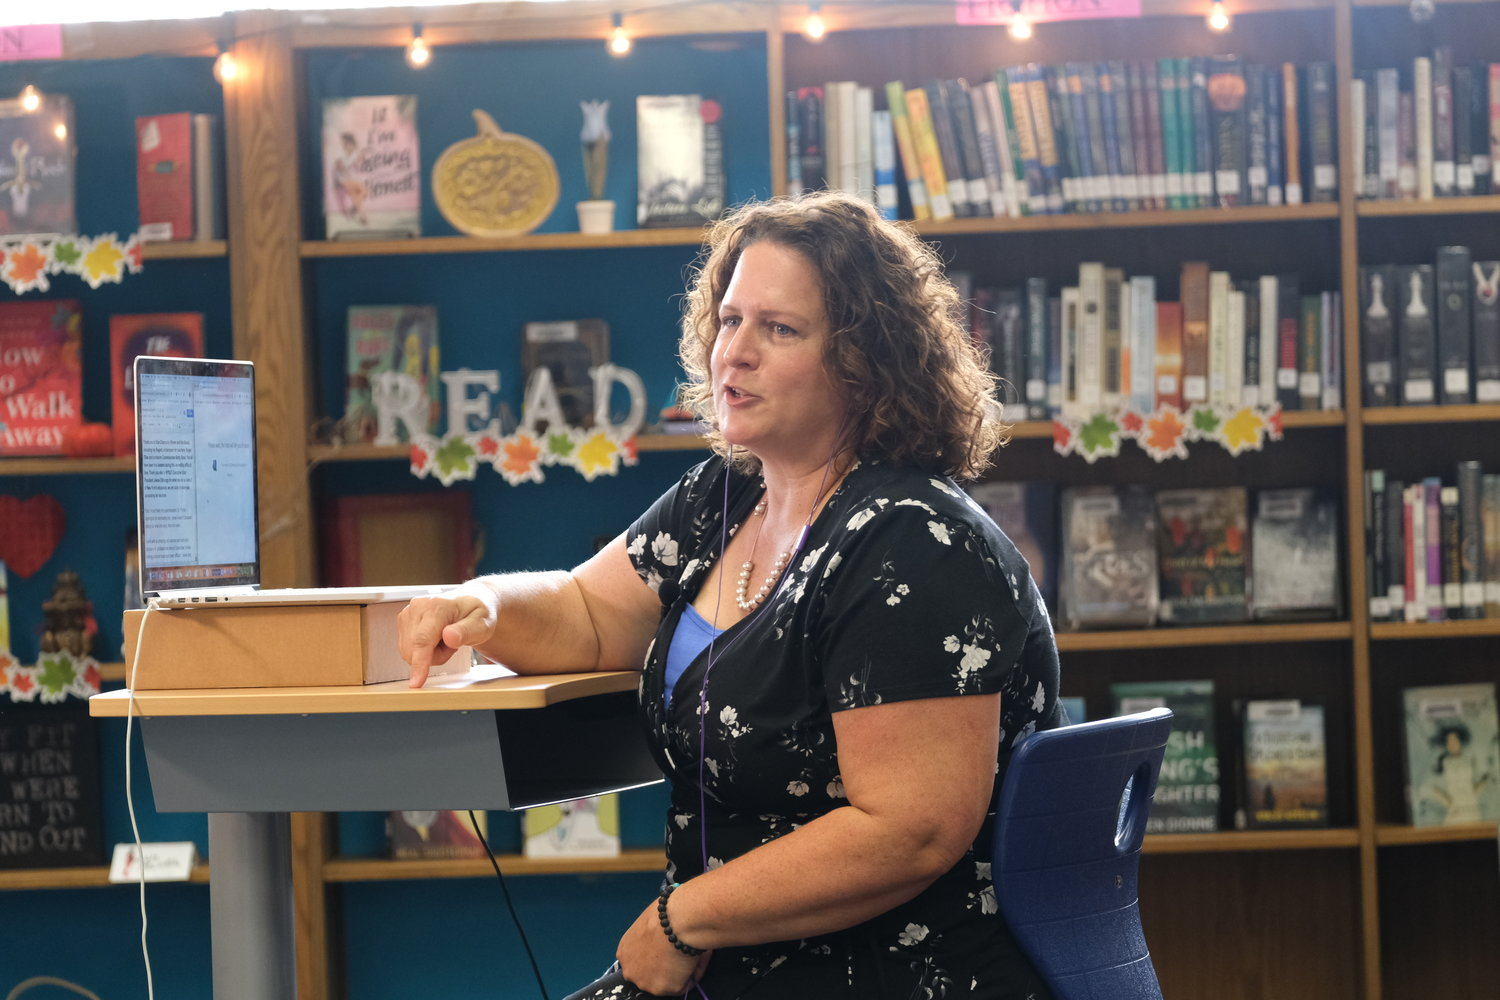 Oceanside High School social studies teacher Jennifer Wolfe accepted the award and gave remarks during the meeting.